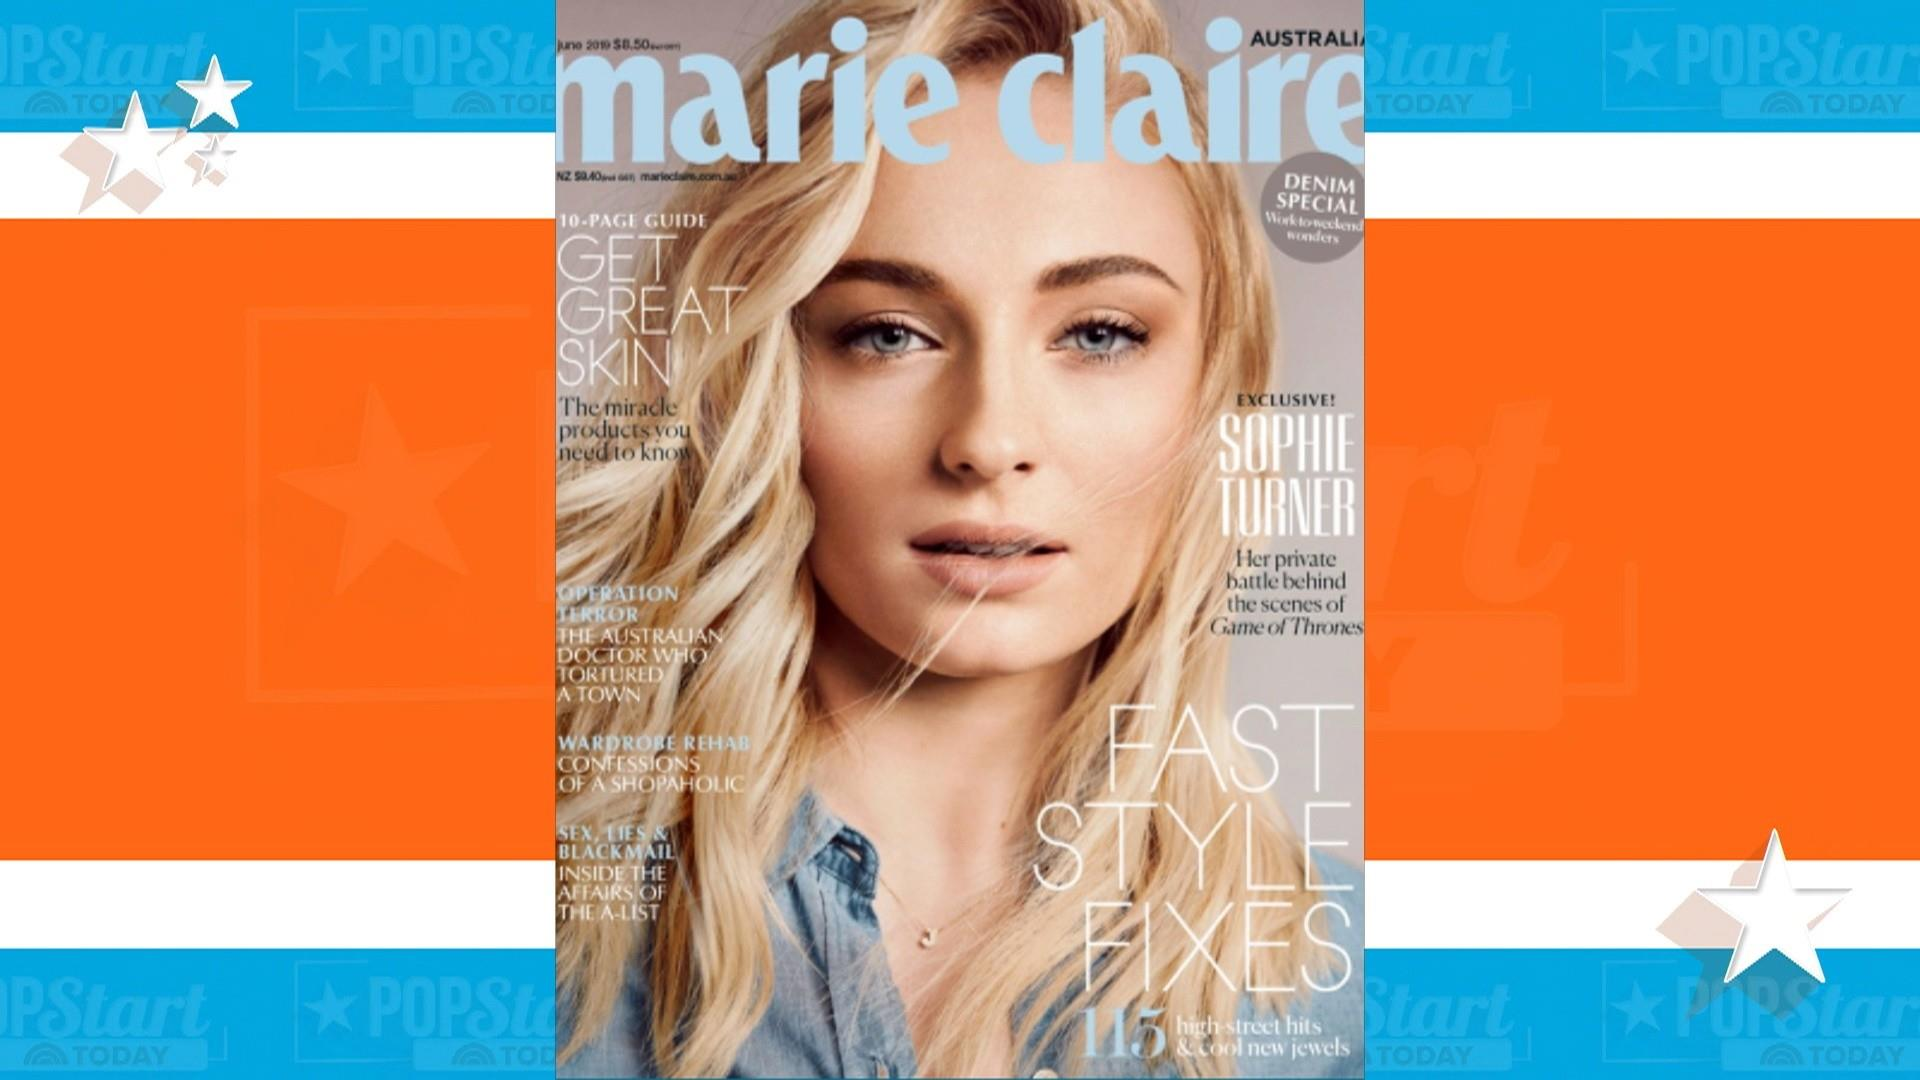 'Game of Thrones' actress Sophie Turner opens up about mental illness